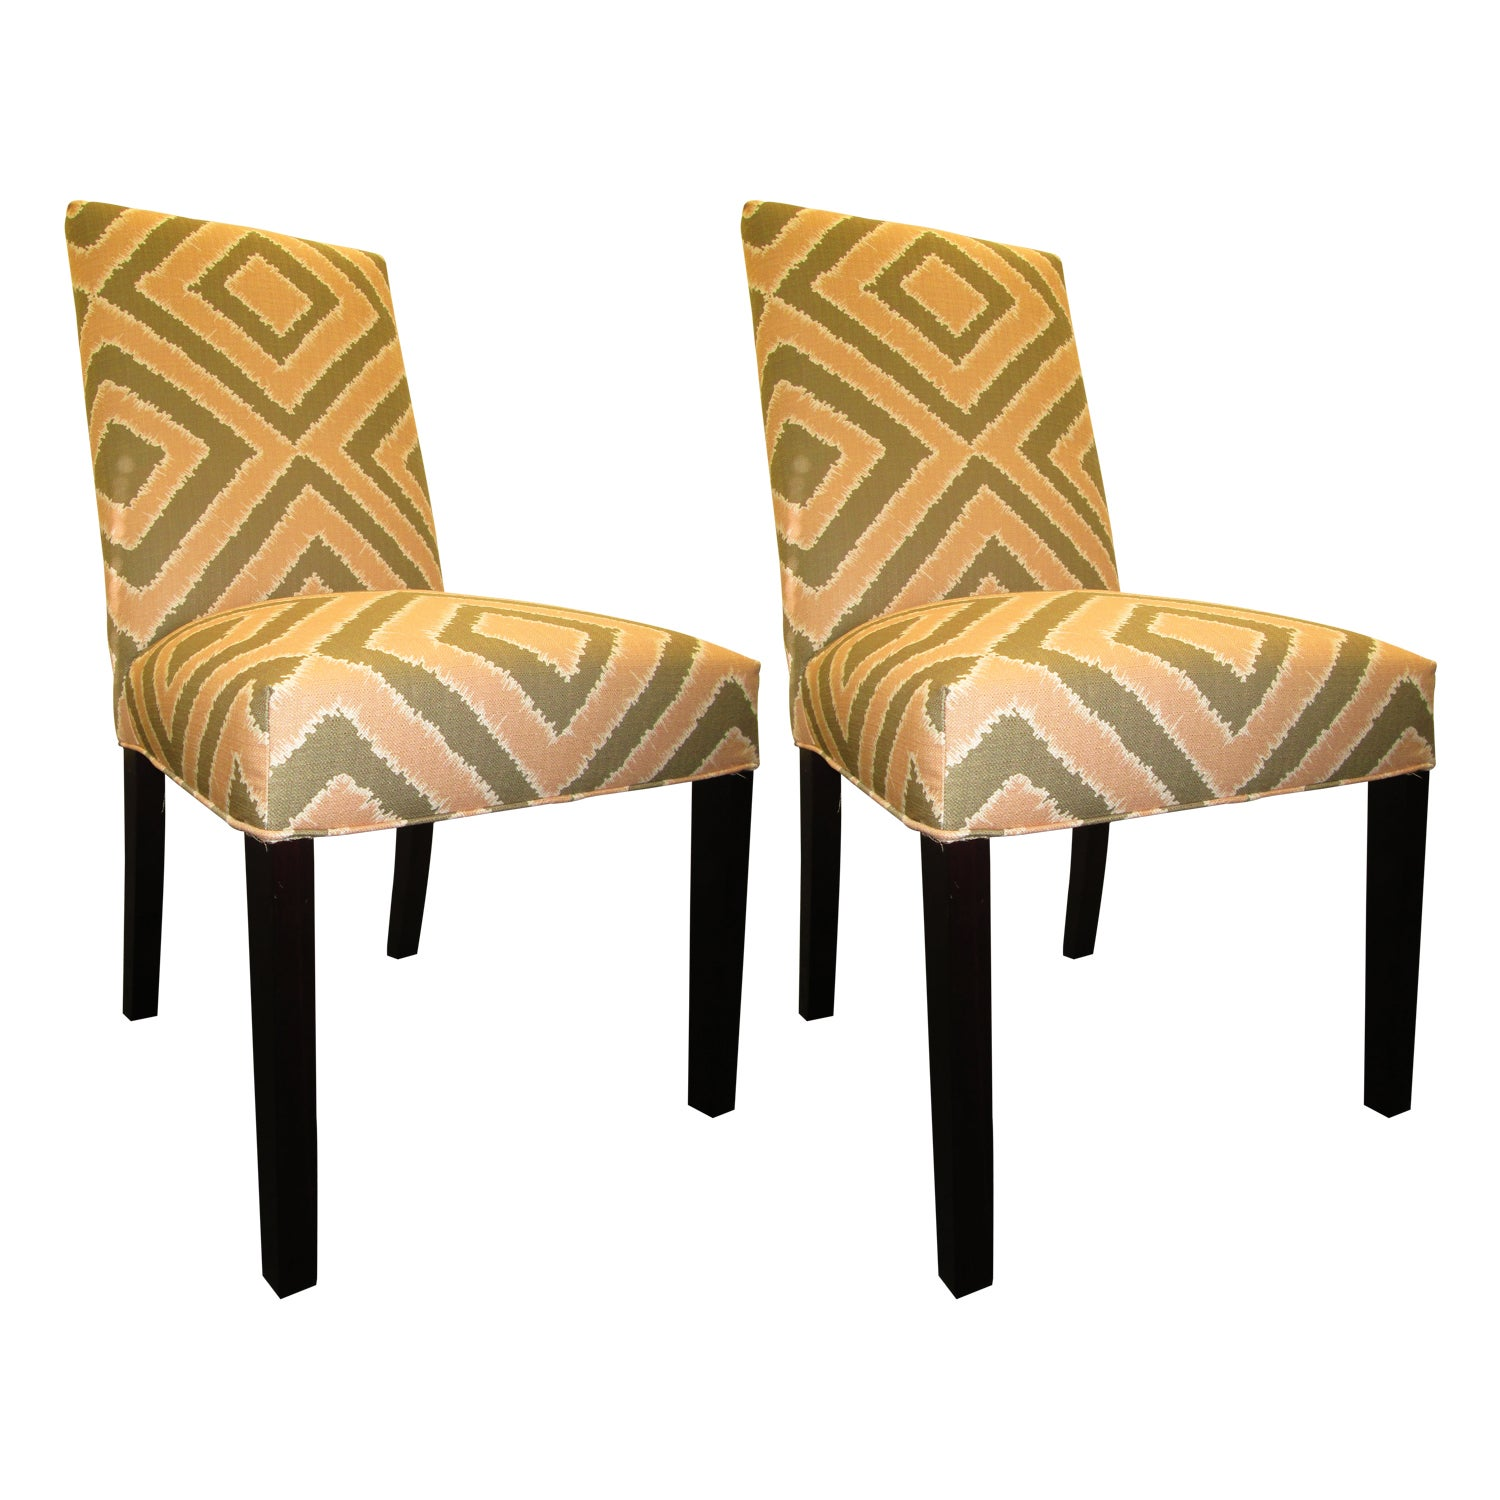 Charmant Nouveau Patterned Dining Chairs (Set Of 2)